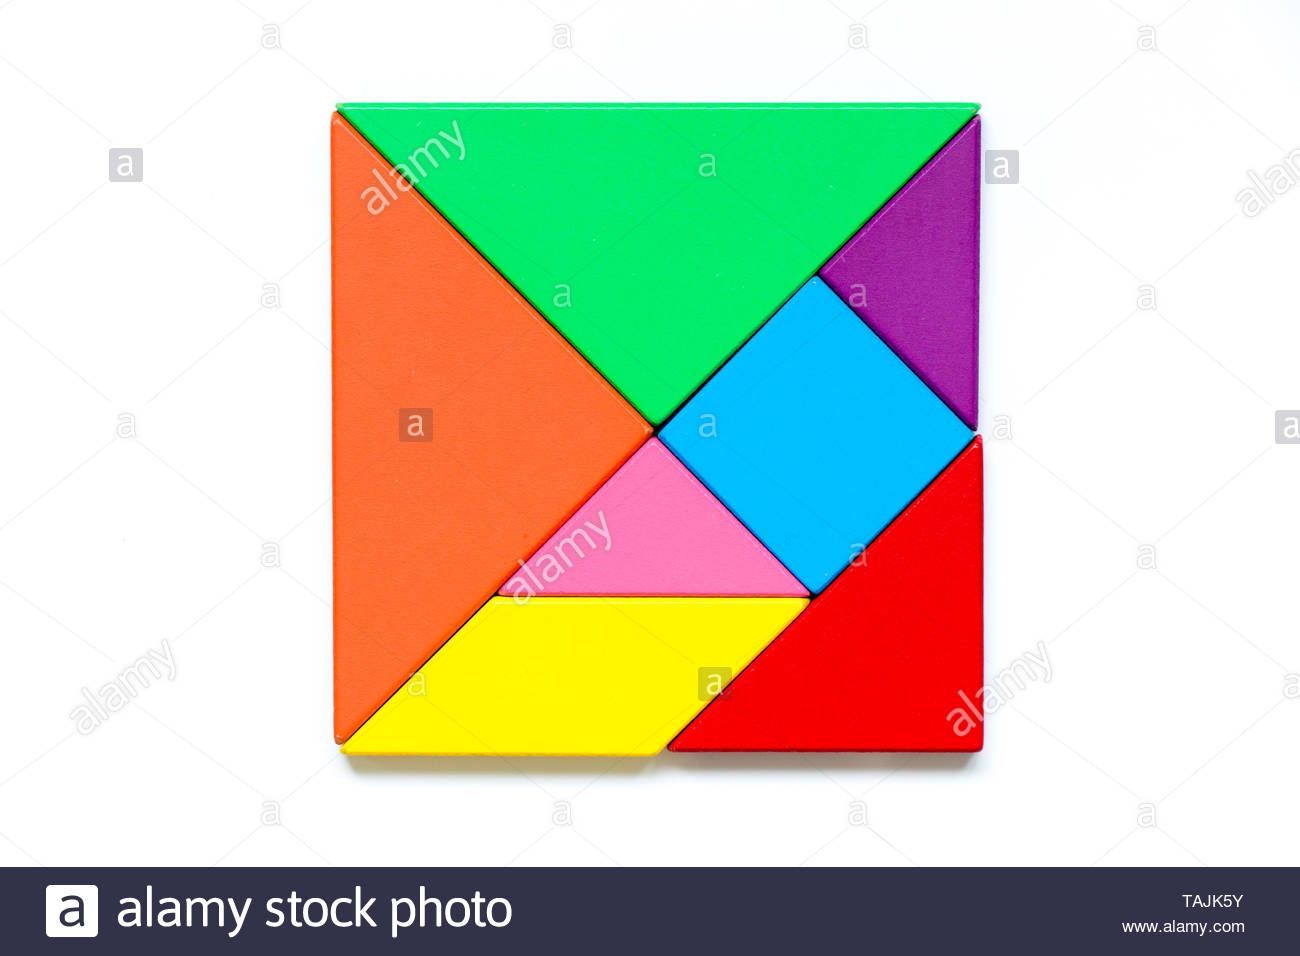 Color Tangram Puzzle In Square Shape On White Background concernant Tangram Chat